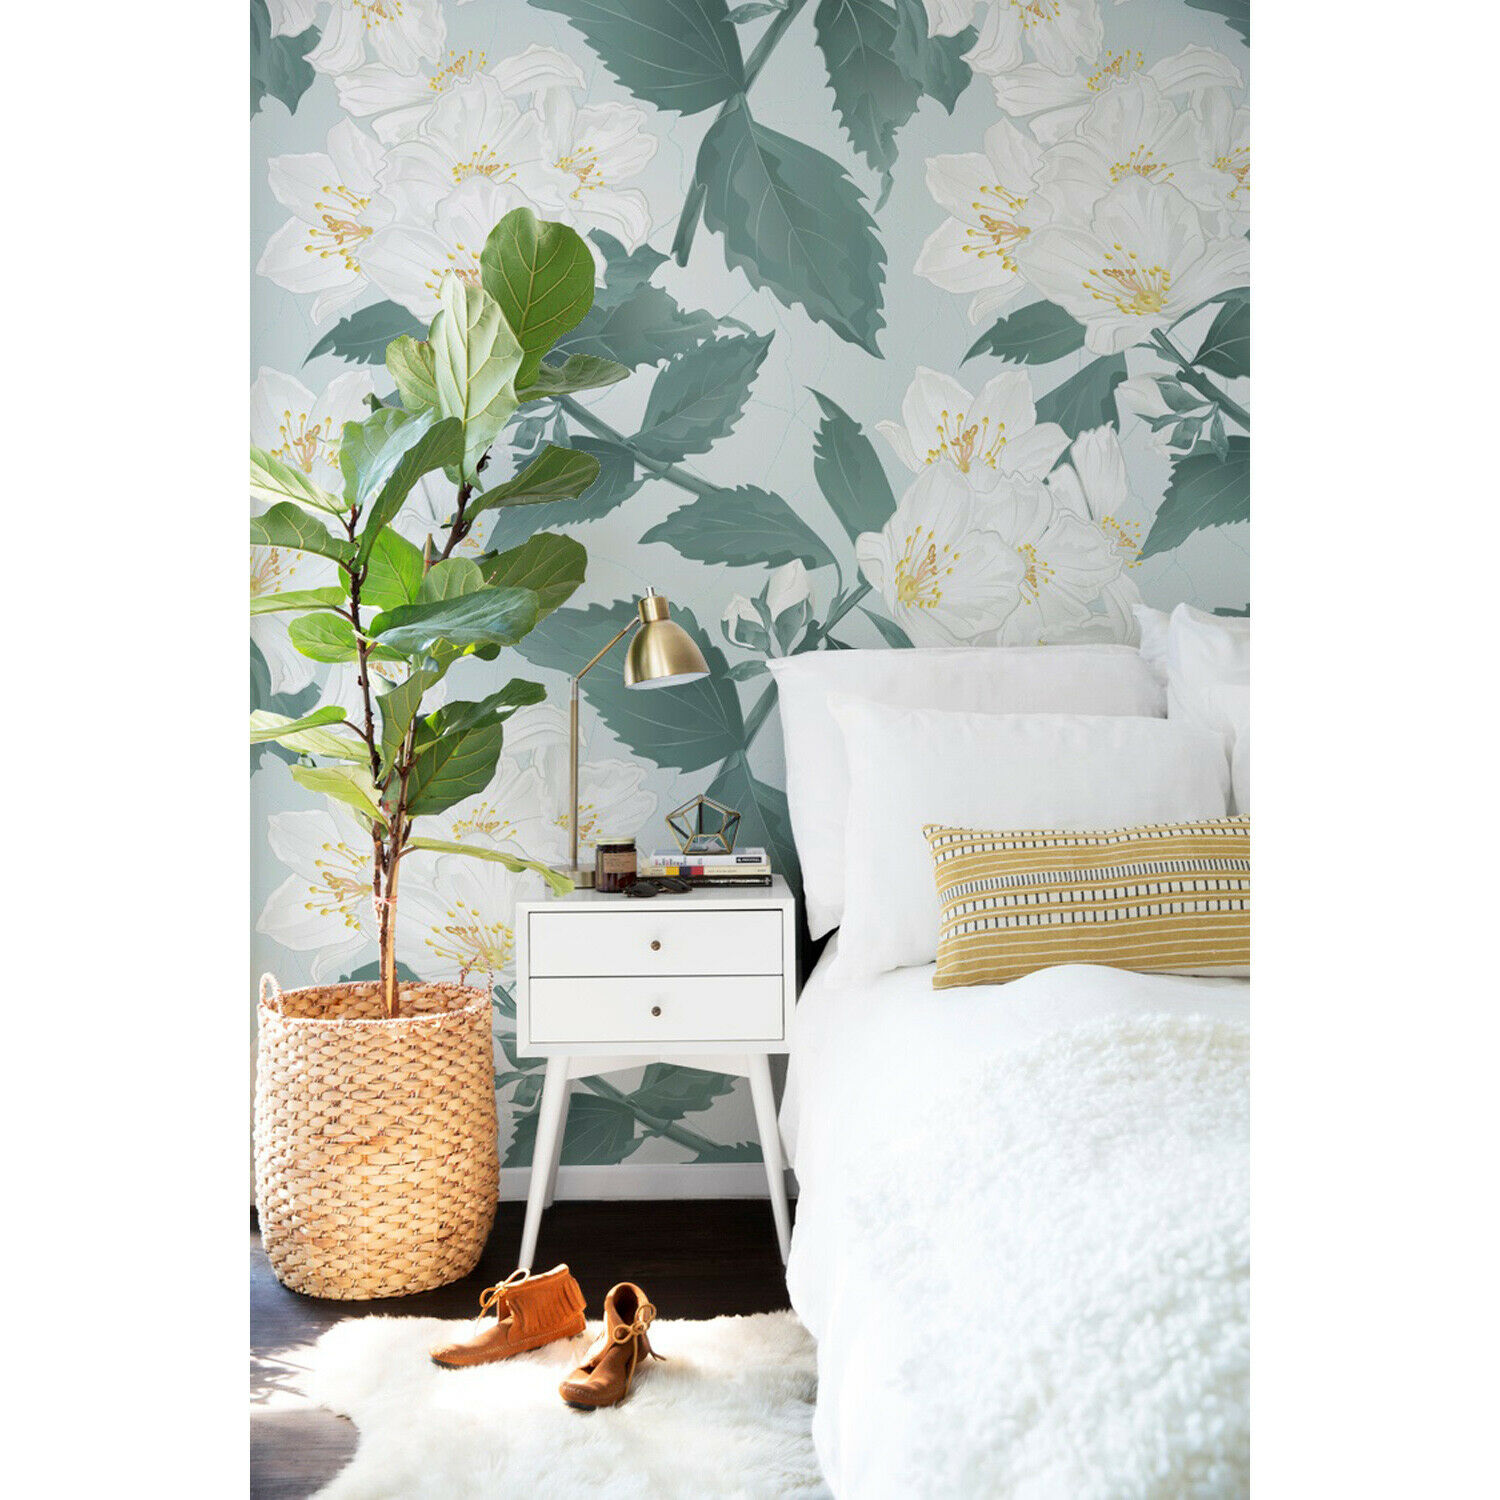 Blooming Flowers floral pastel nature garden still life retro Wall Mural